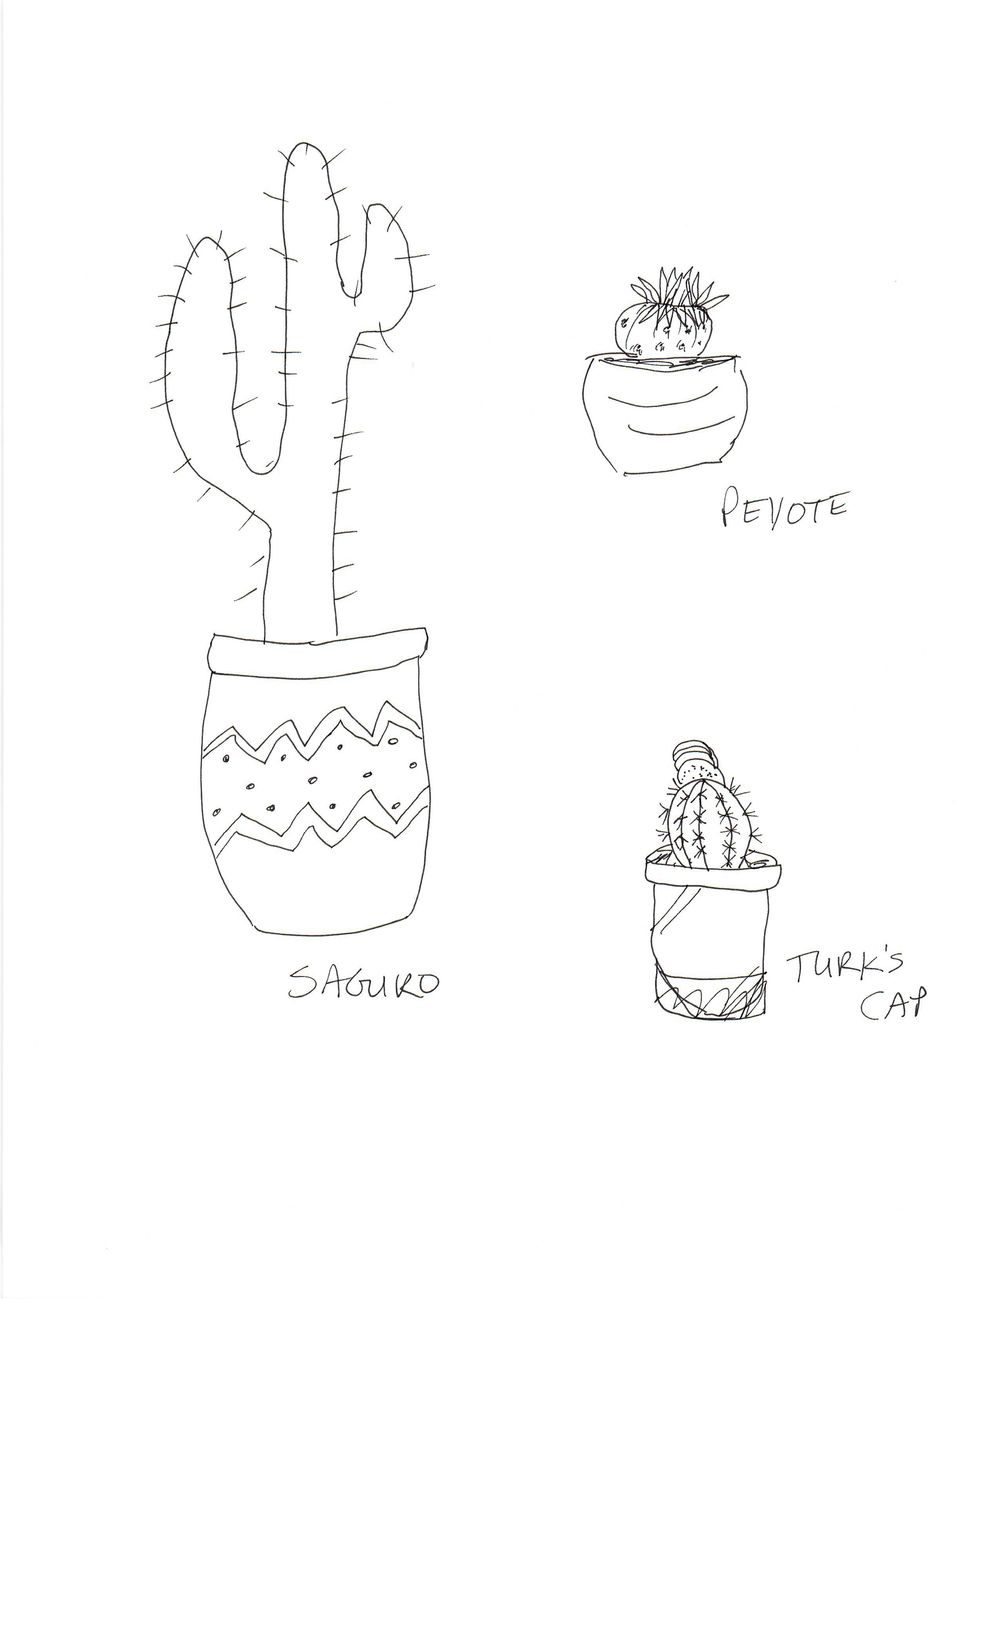 Practice Practice Practice Cactus cactus cactus. - image 8 - student project